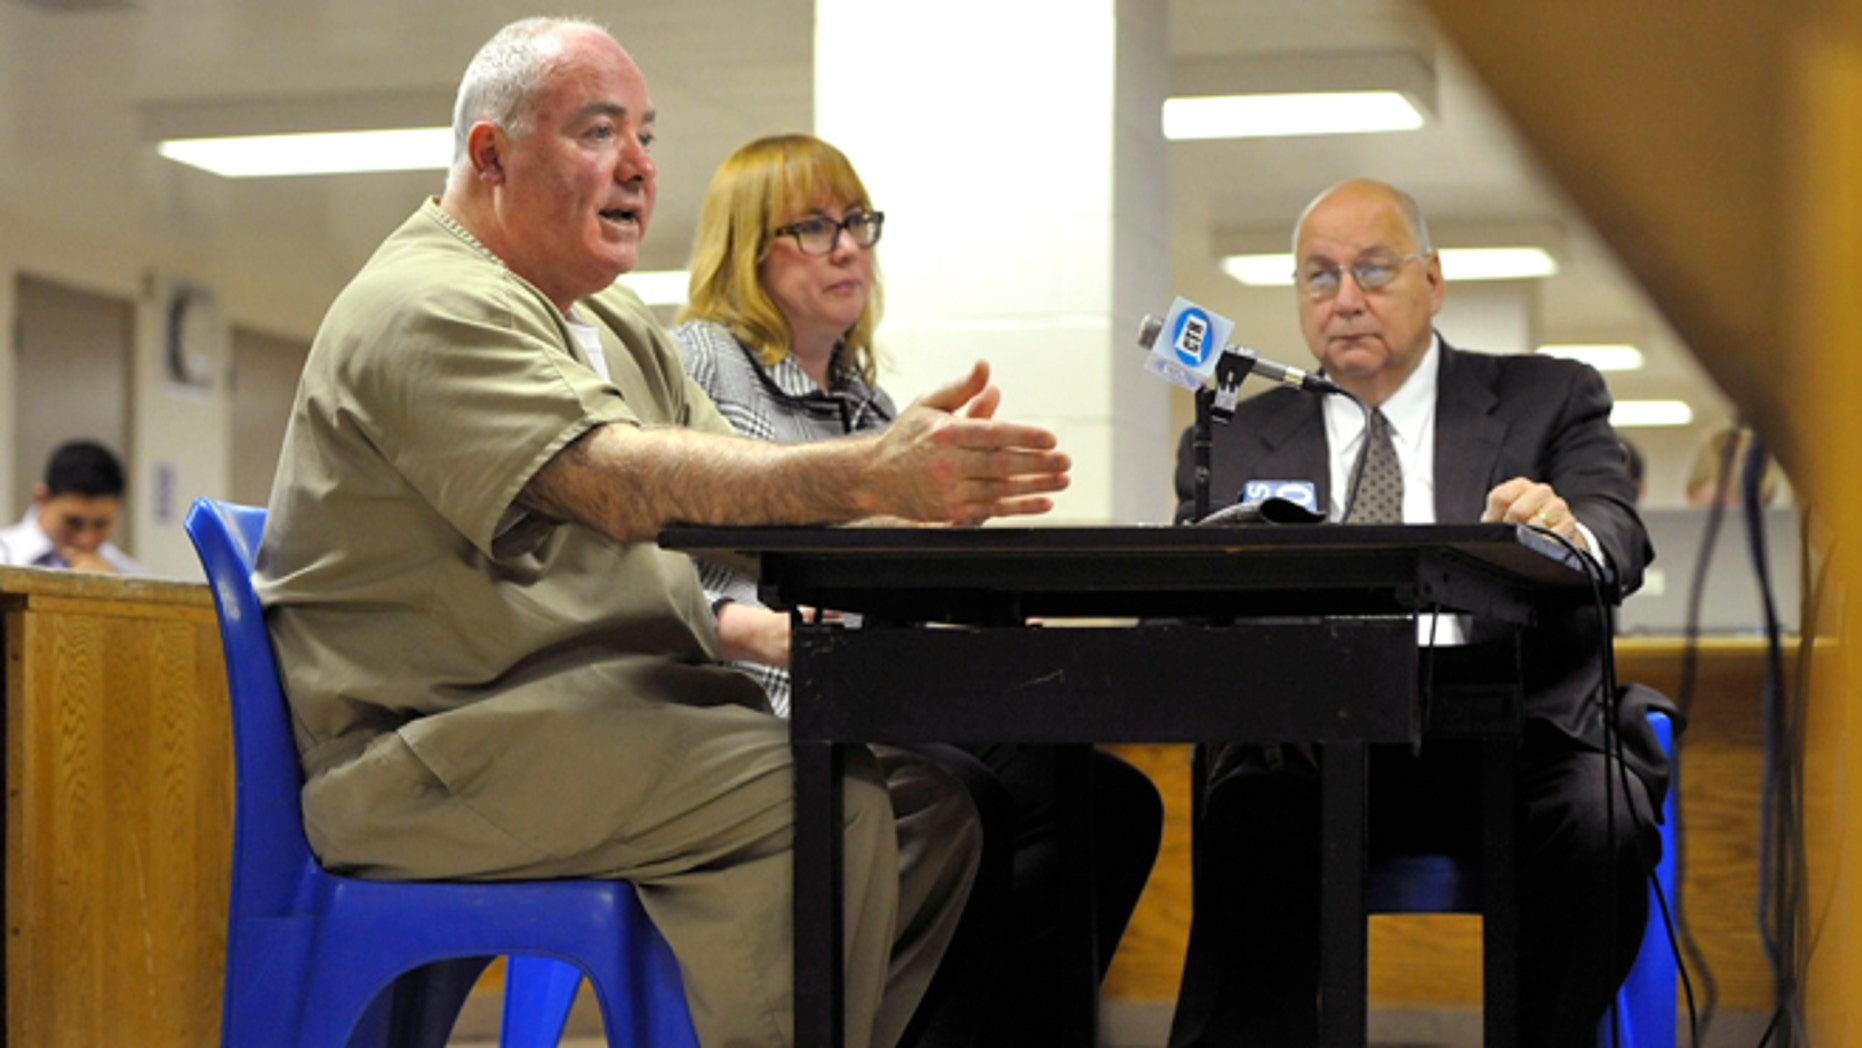 Oct. 24, 2012: Michael Skakel, left, addresses a parole board with his attorneys Hope Seeley, center, and Hubert Santos, right, at his side during a parole hearing at McDougall-Walker Correctional Institution in Suffield, Conn.